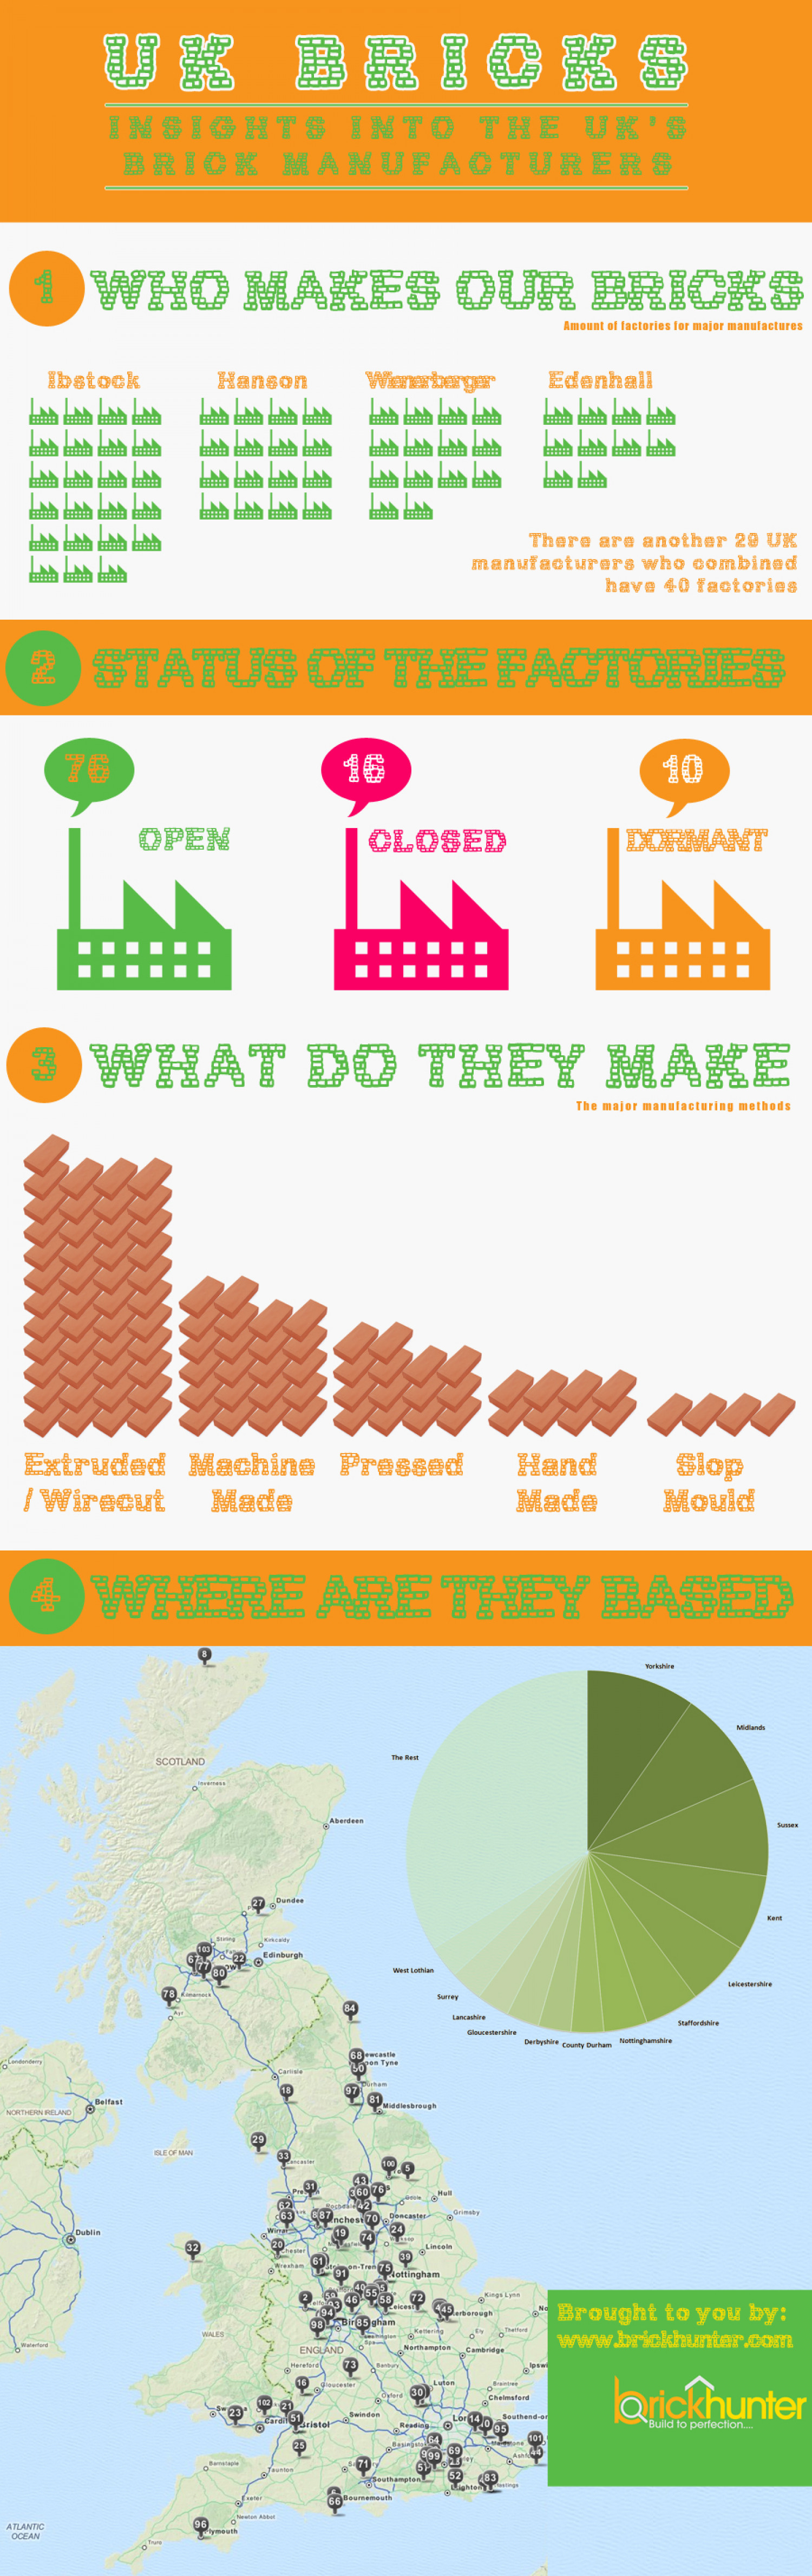 UK Bricks Infographic Infographic